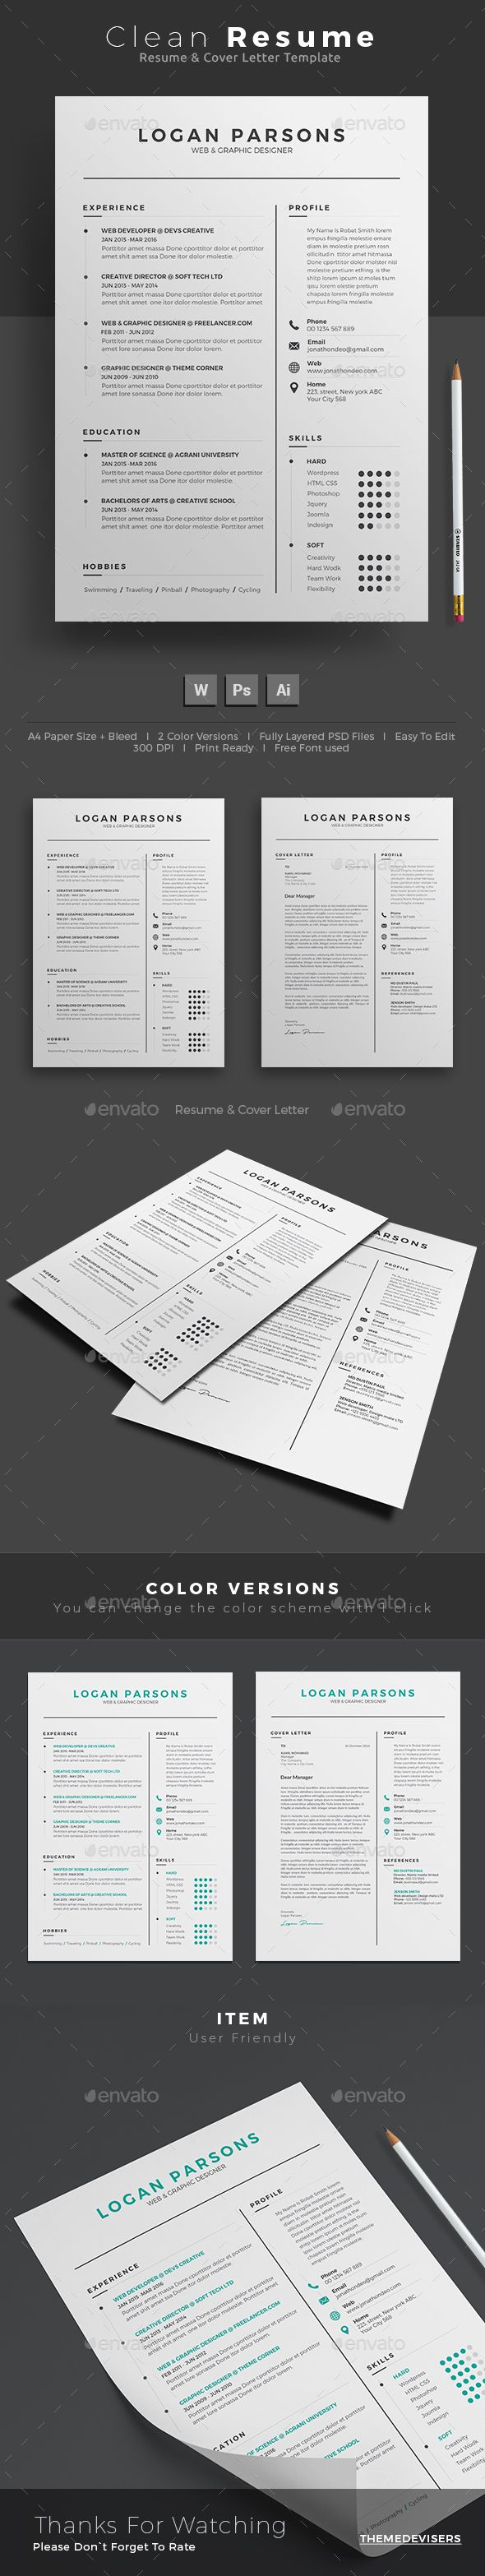 Resume 35 best Personal branding images on